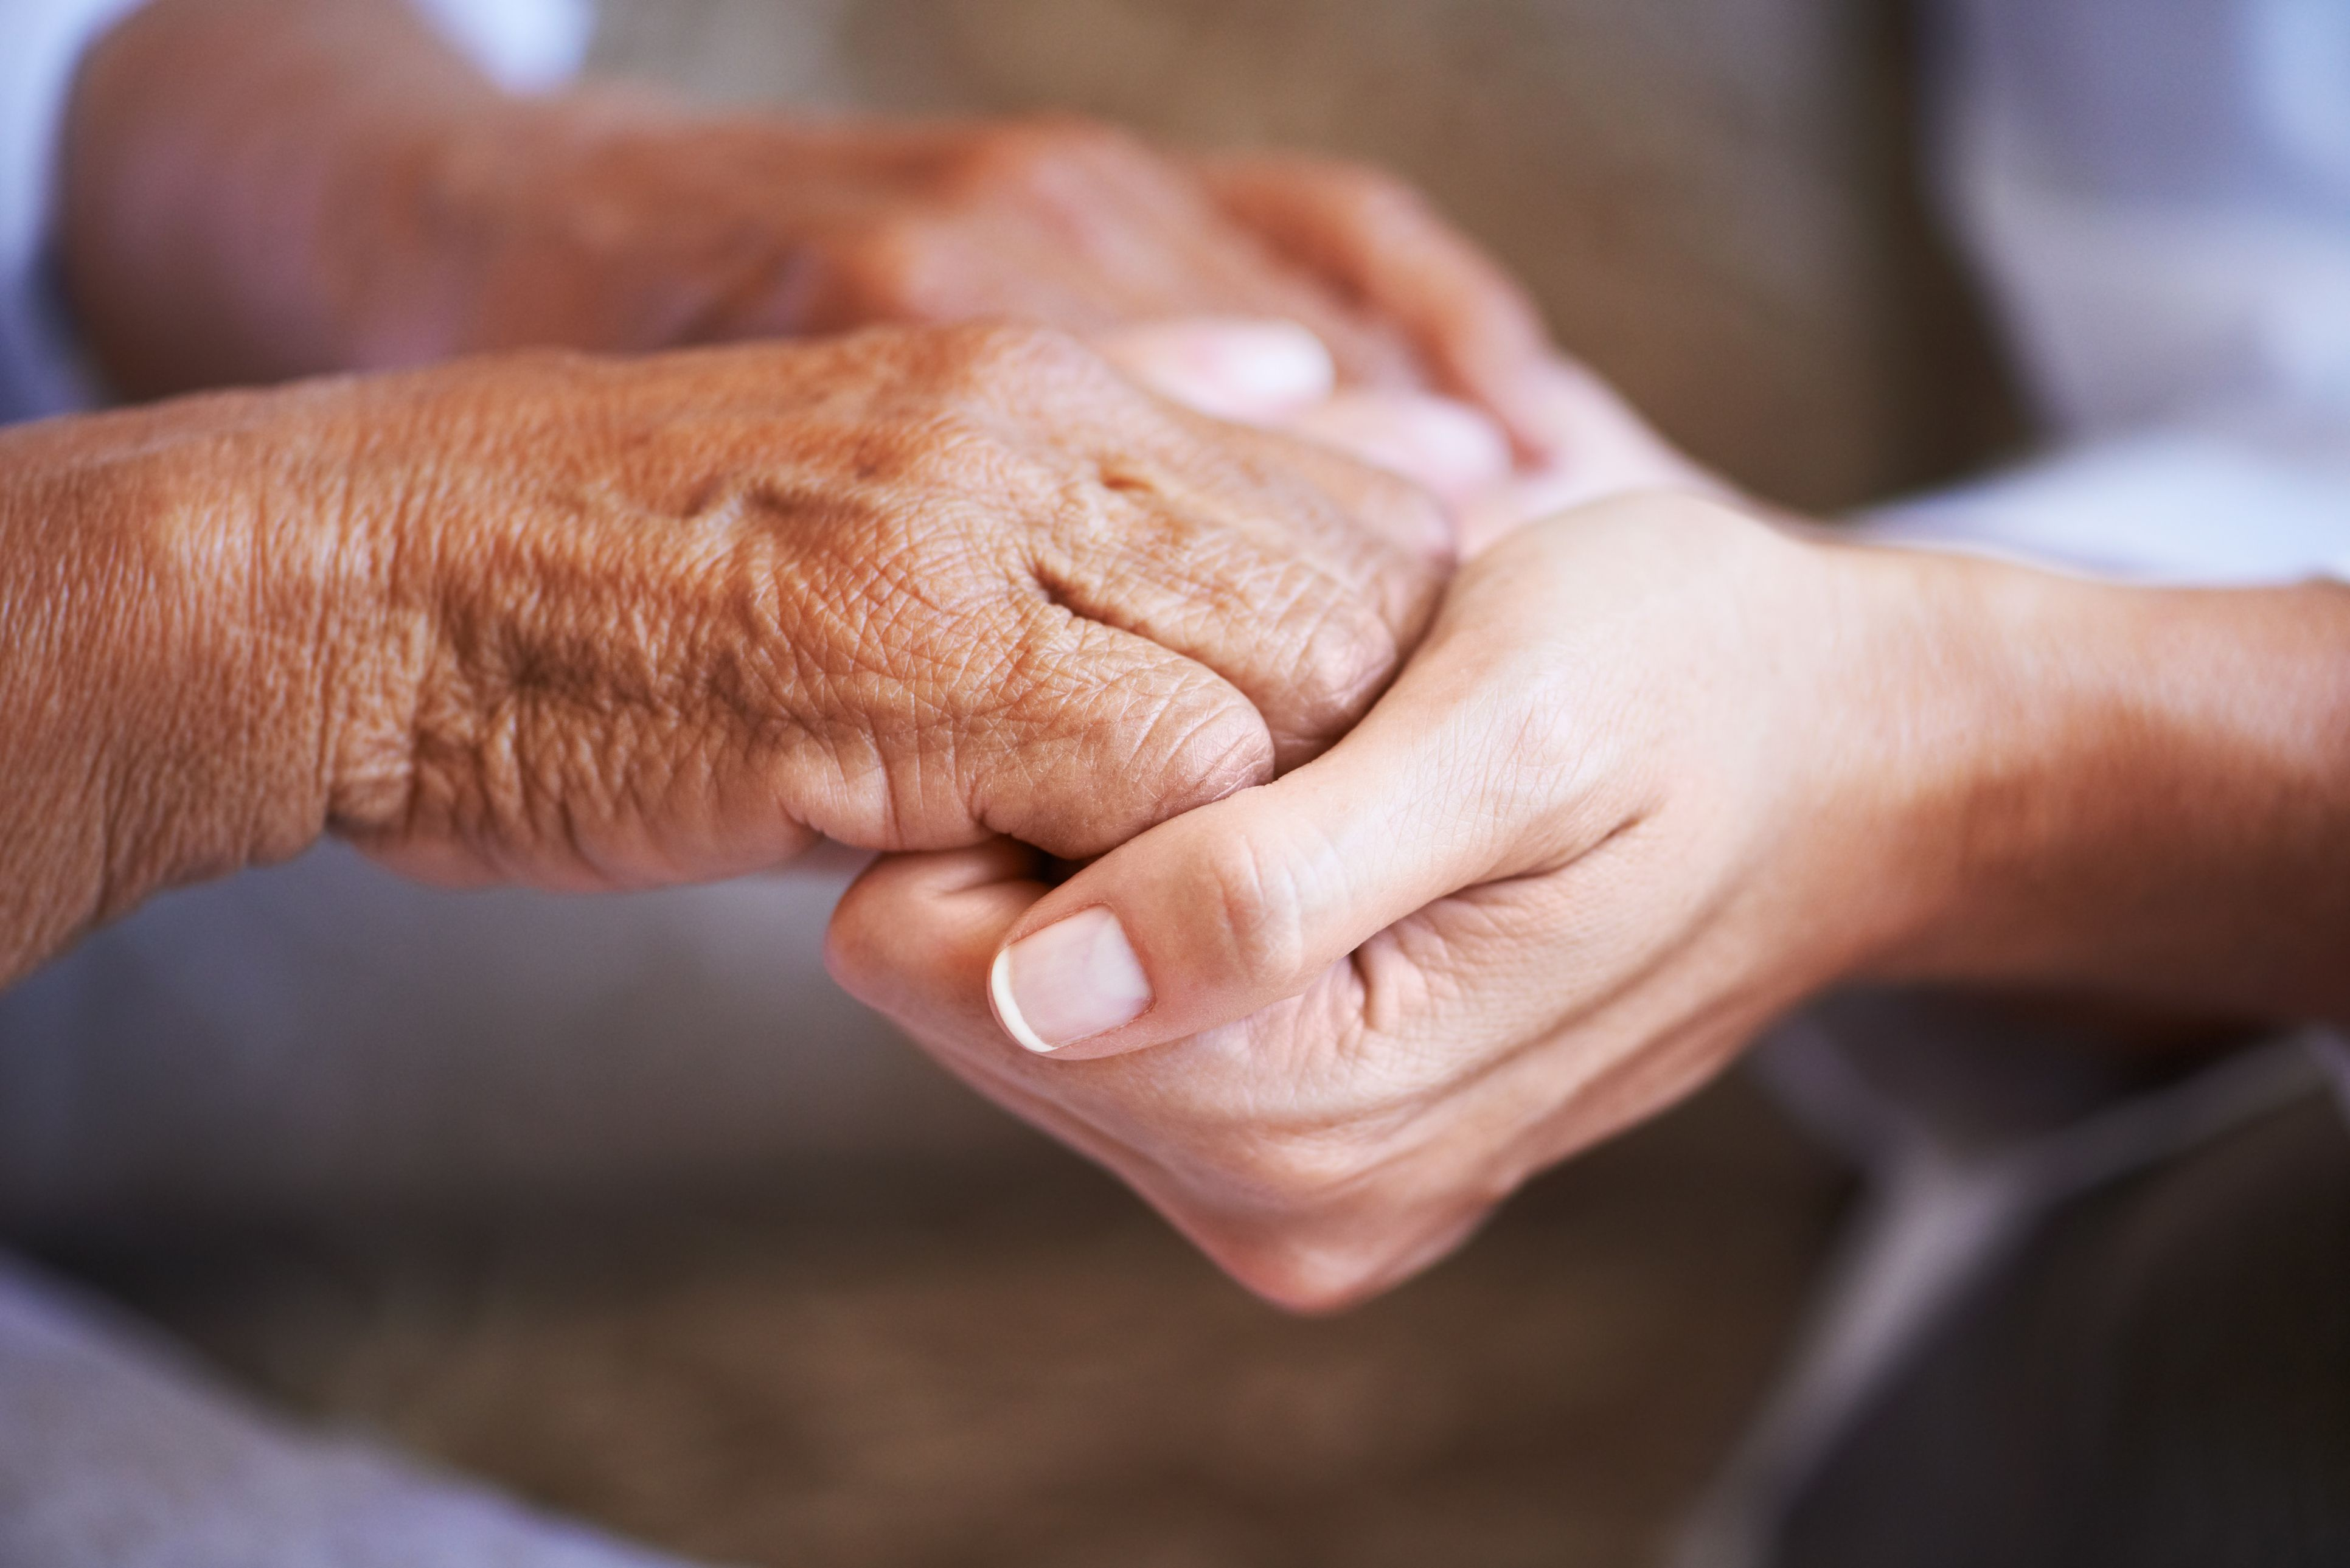 Two people holding hands - an elderly person and a young person